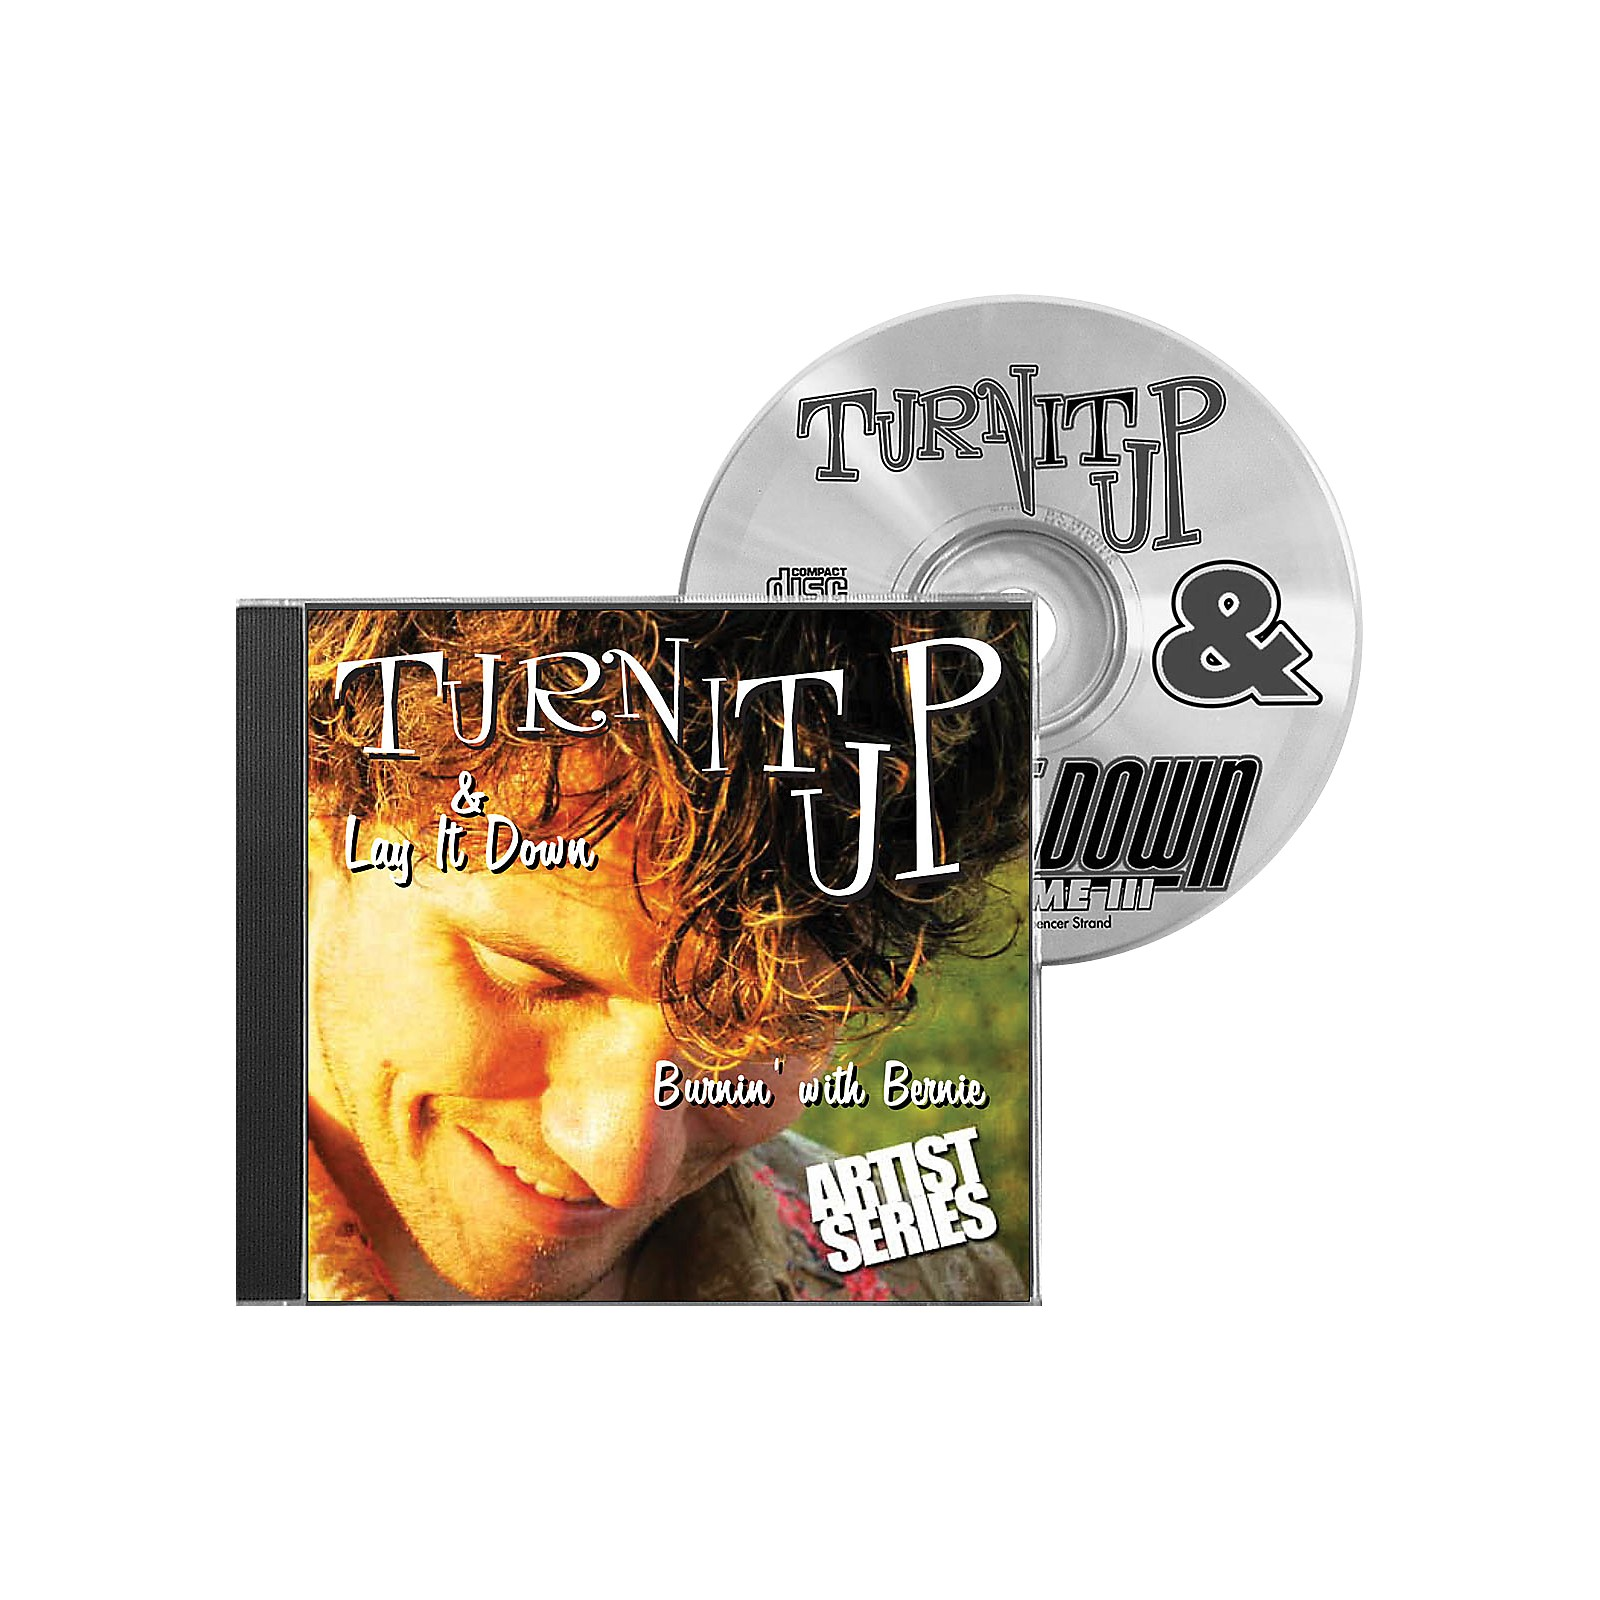 Drum Fun Inc Turn It Up and Lay It Down, Volume 9 - Burnin' with Bernie - Play Along CD for Drummers